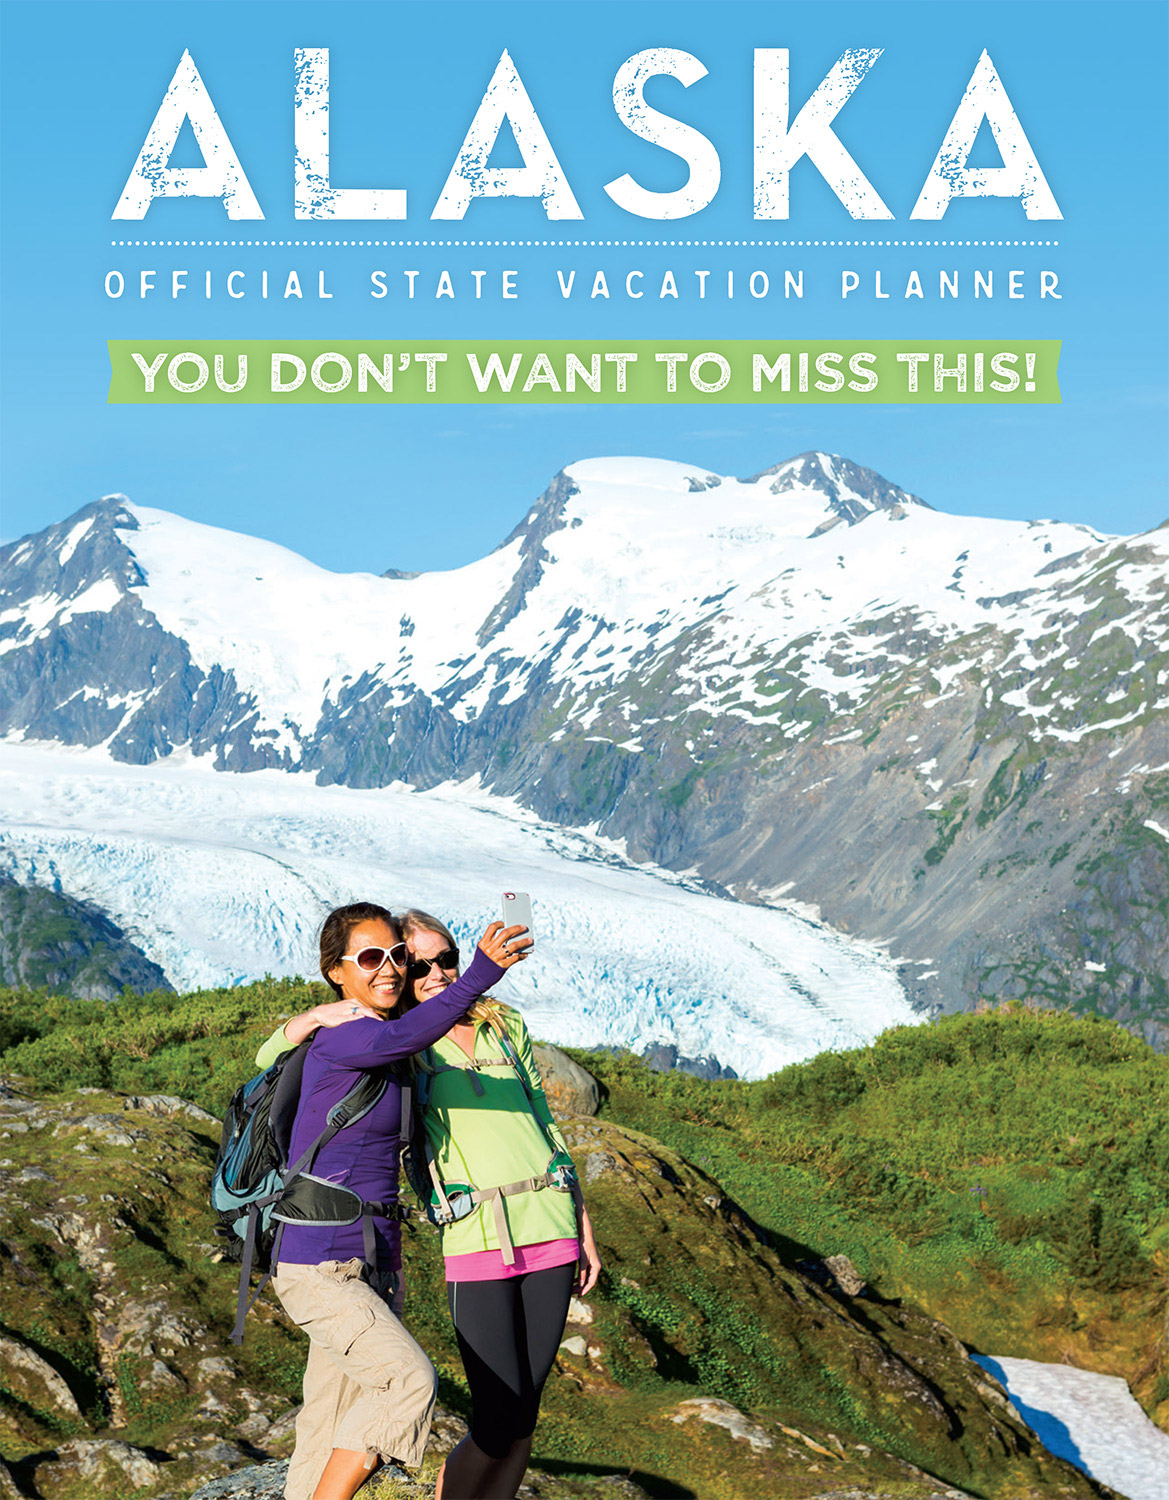 Travel Alaska 2017 Vacation Planner Photographer M DeYoung